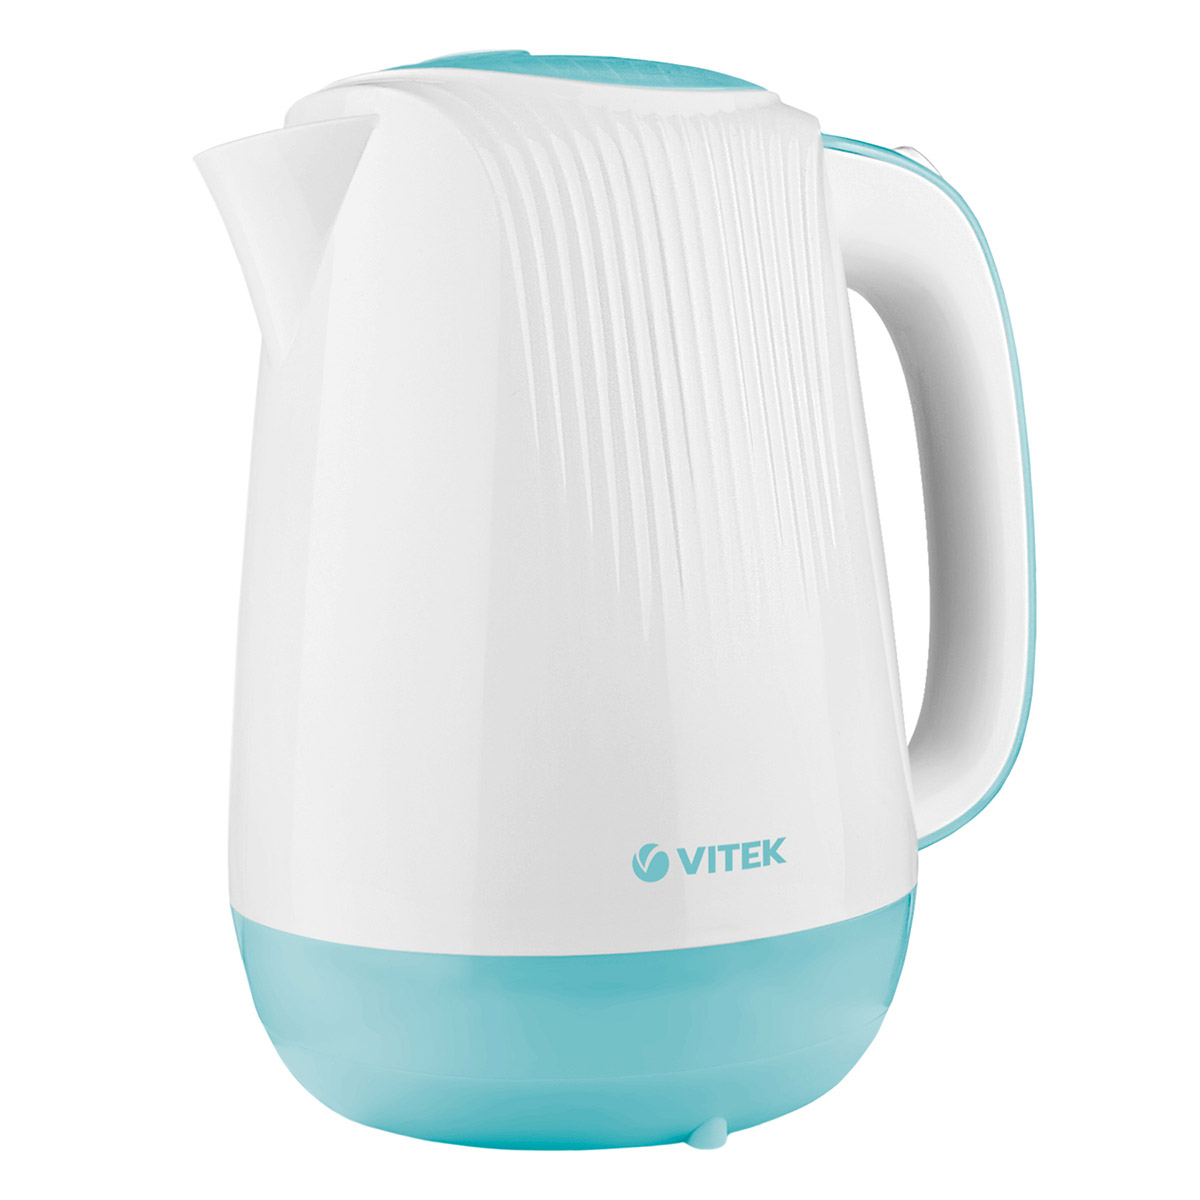 Electric kettle VITEK VT-7059 W (Power 2200 W, volume 1.7 liters, light, filter, 360 ° rotation) free shipping one pieces furutech flux 50 filter inline power high end grade carbon fiber power filter